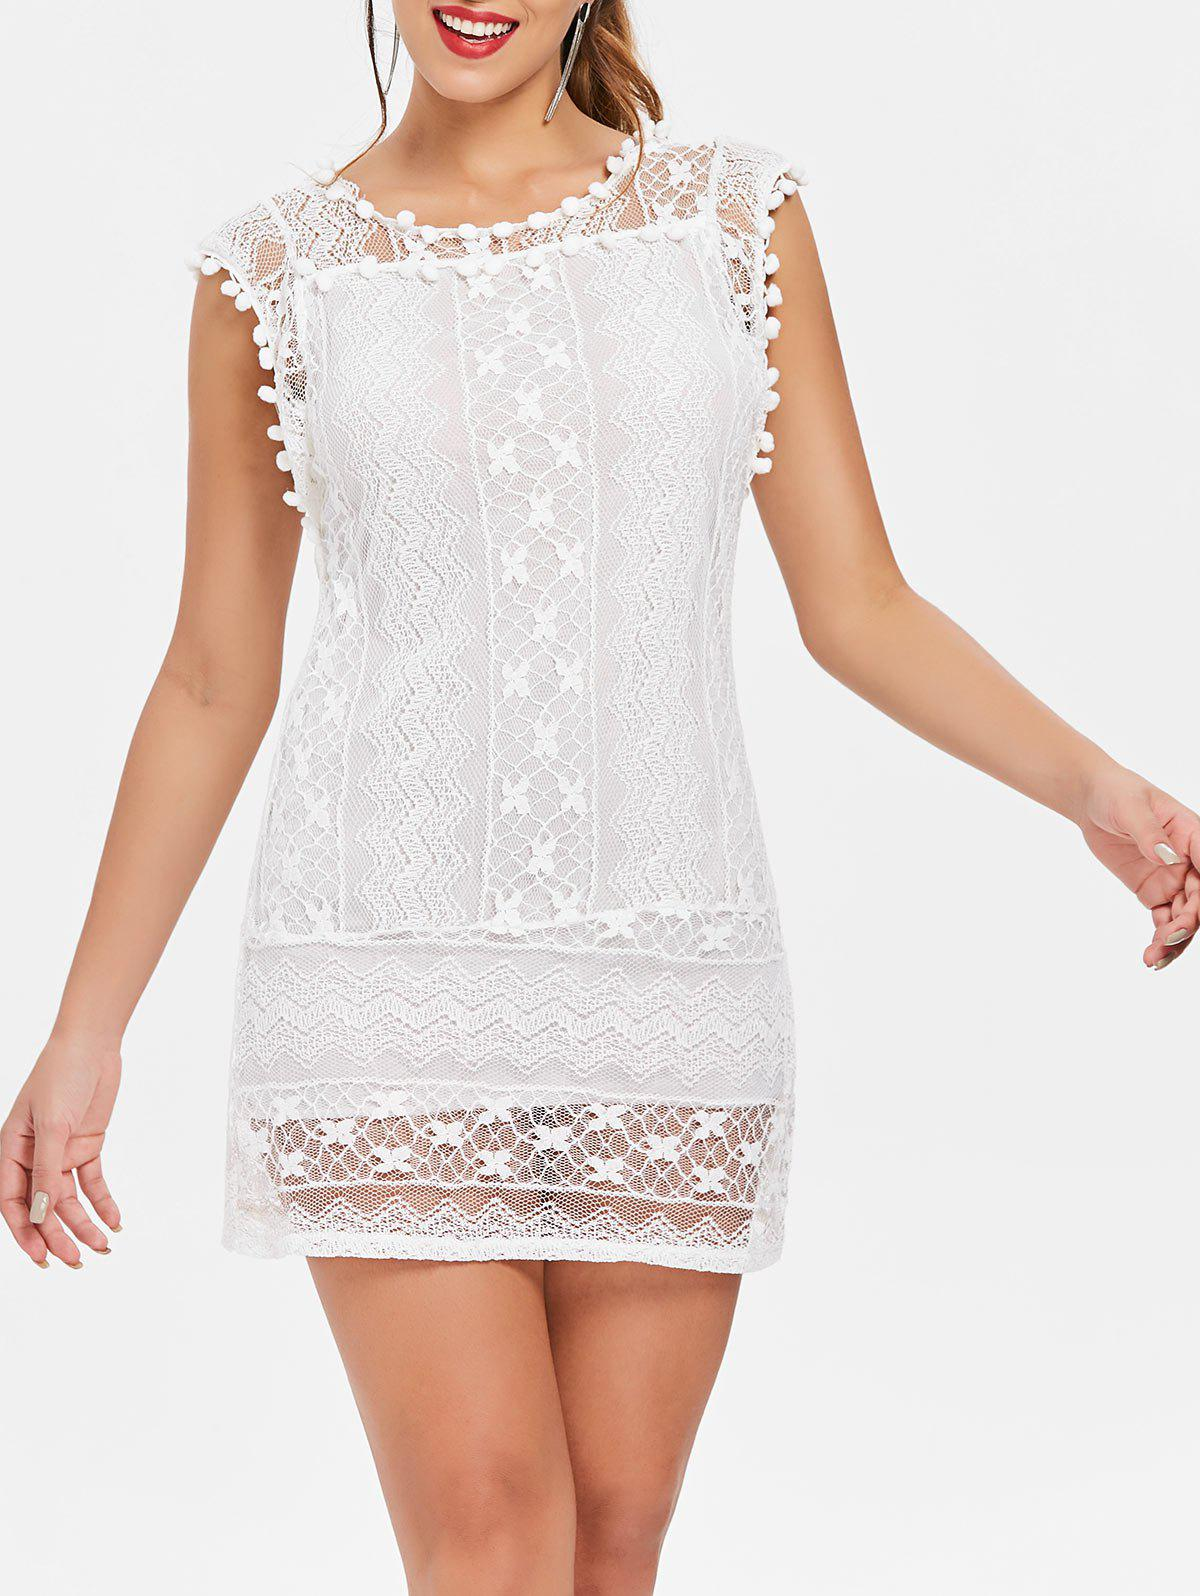 Discount Scoop Collar Sleeveless See-Through Crochet Tunic